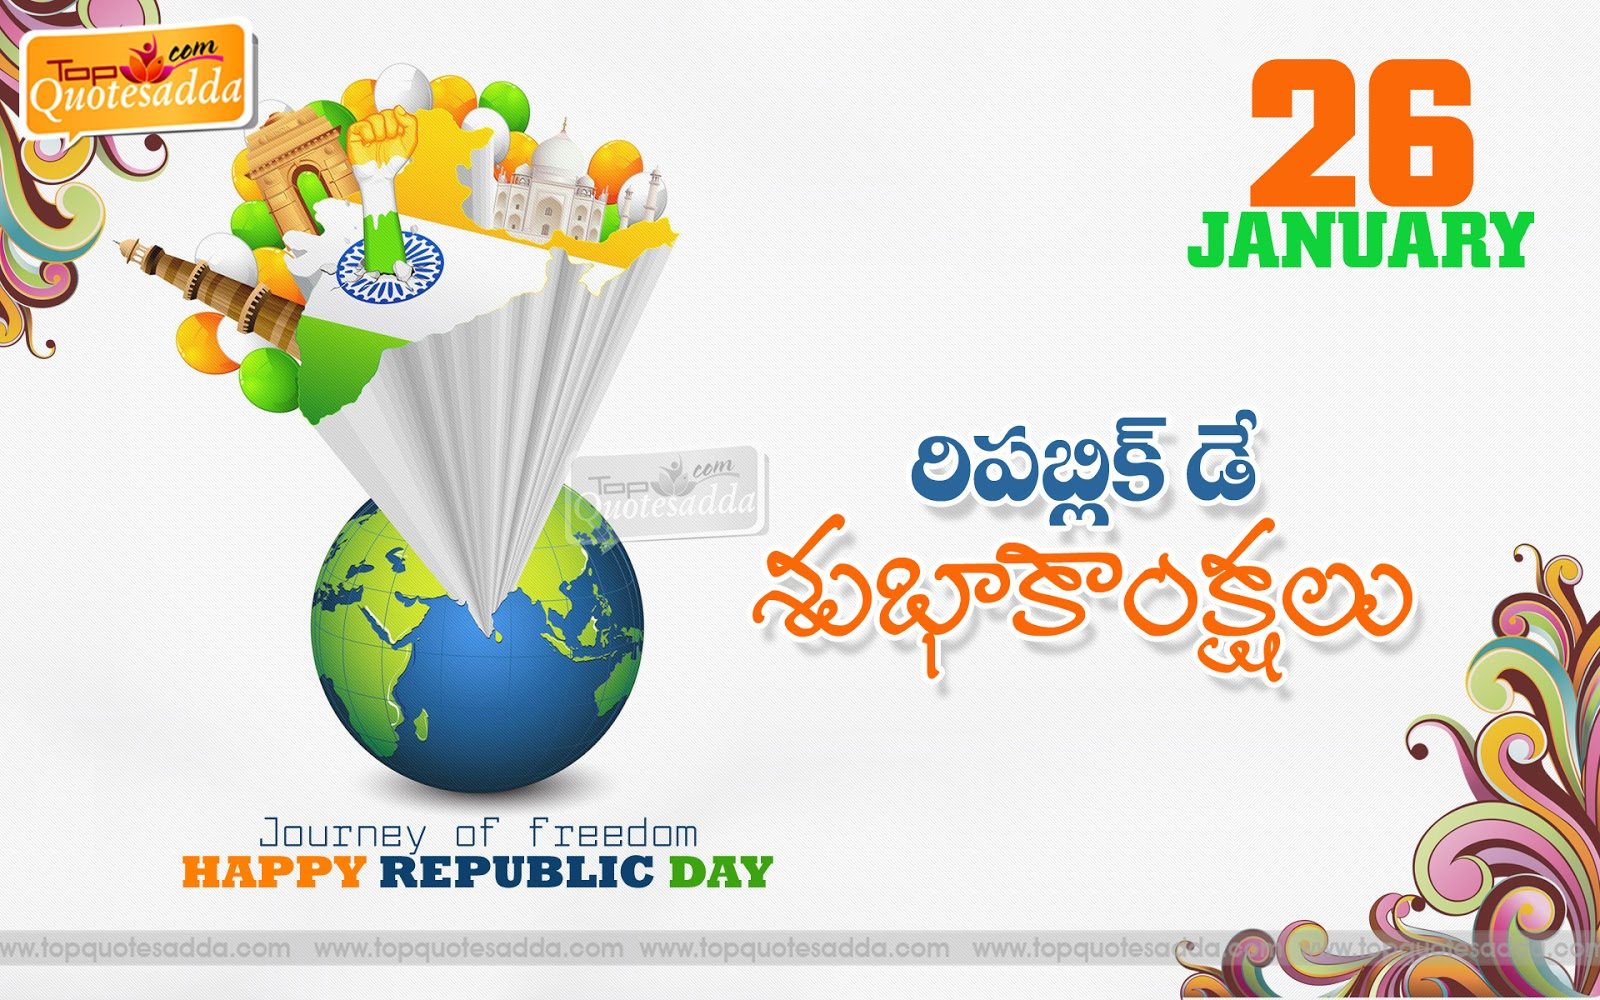 Hd 26 january republic day images download happy republic day republic day new images m4hsunfo